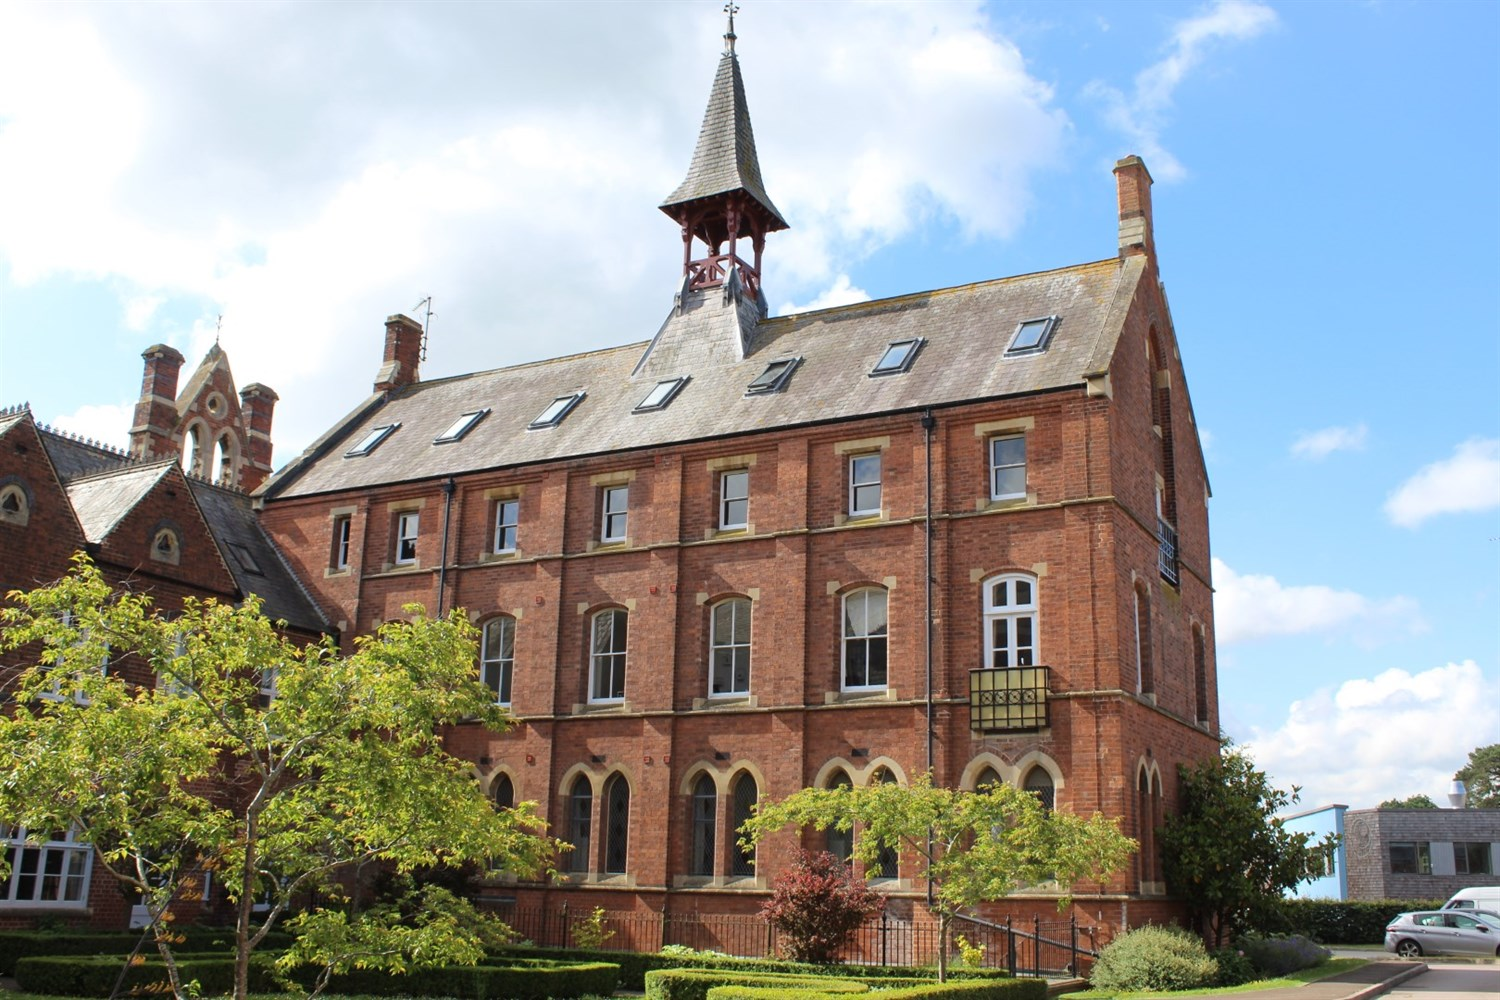 30 Frome Court, Bartestree, Hereford